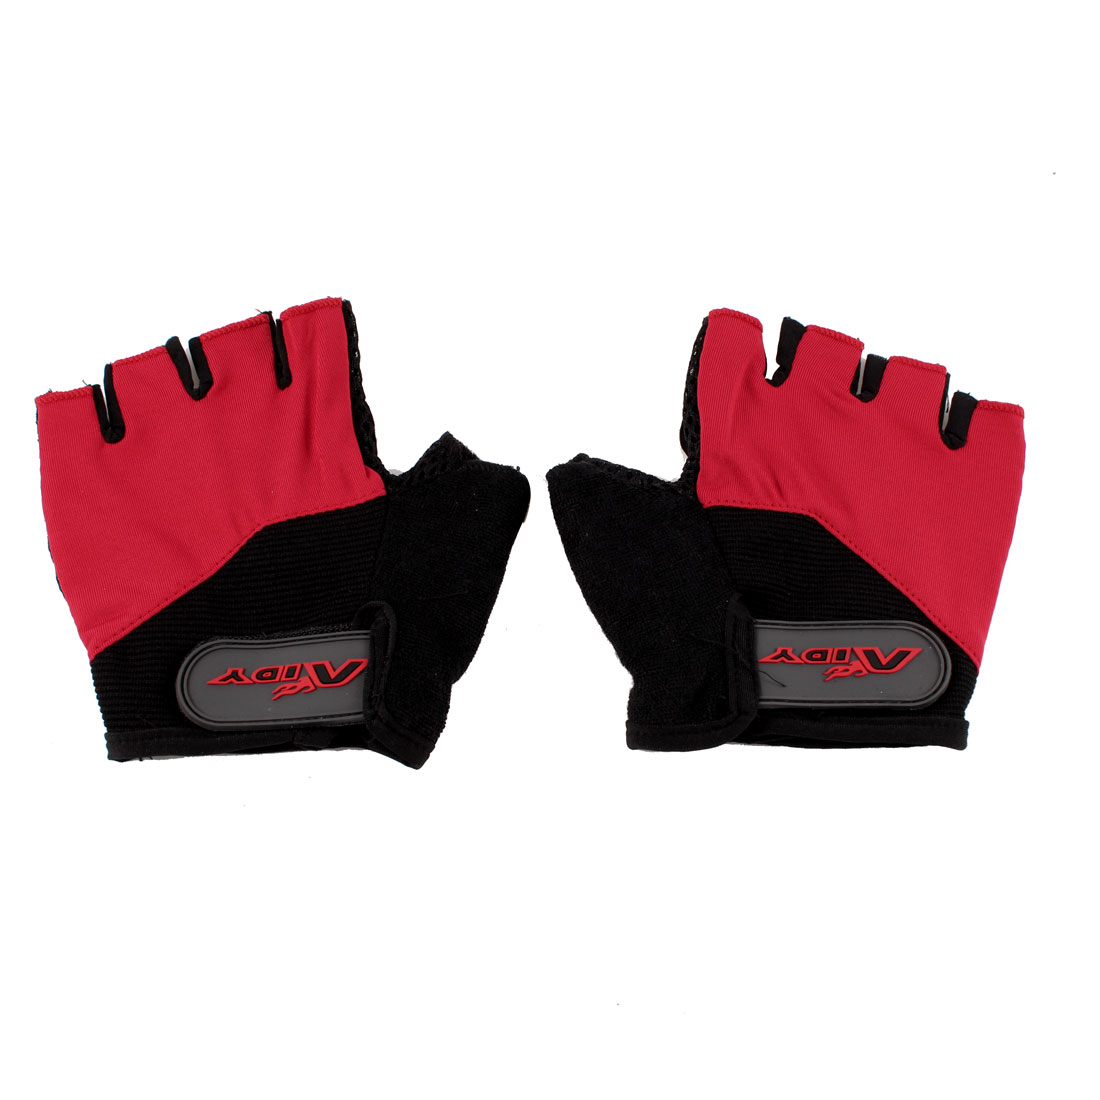 Pair Red Black Half Finger Skidproof Sports Racing Cycling Gloves